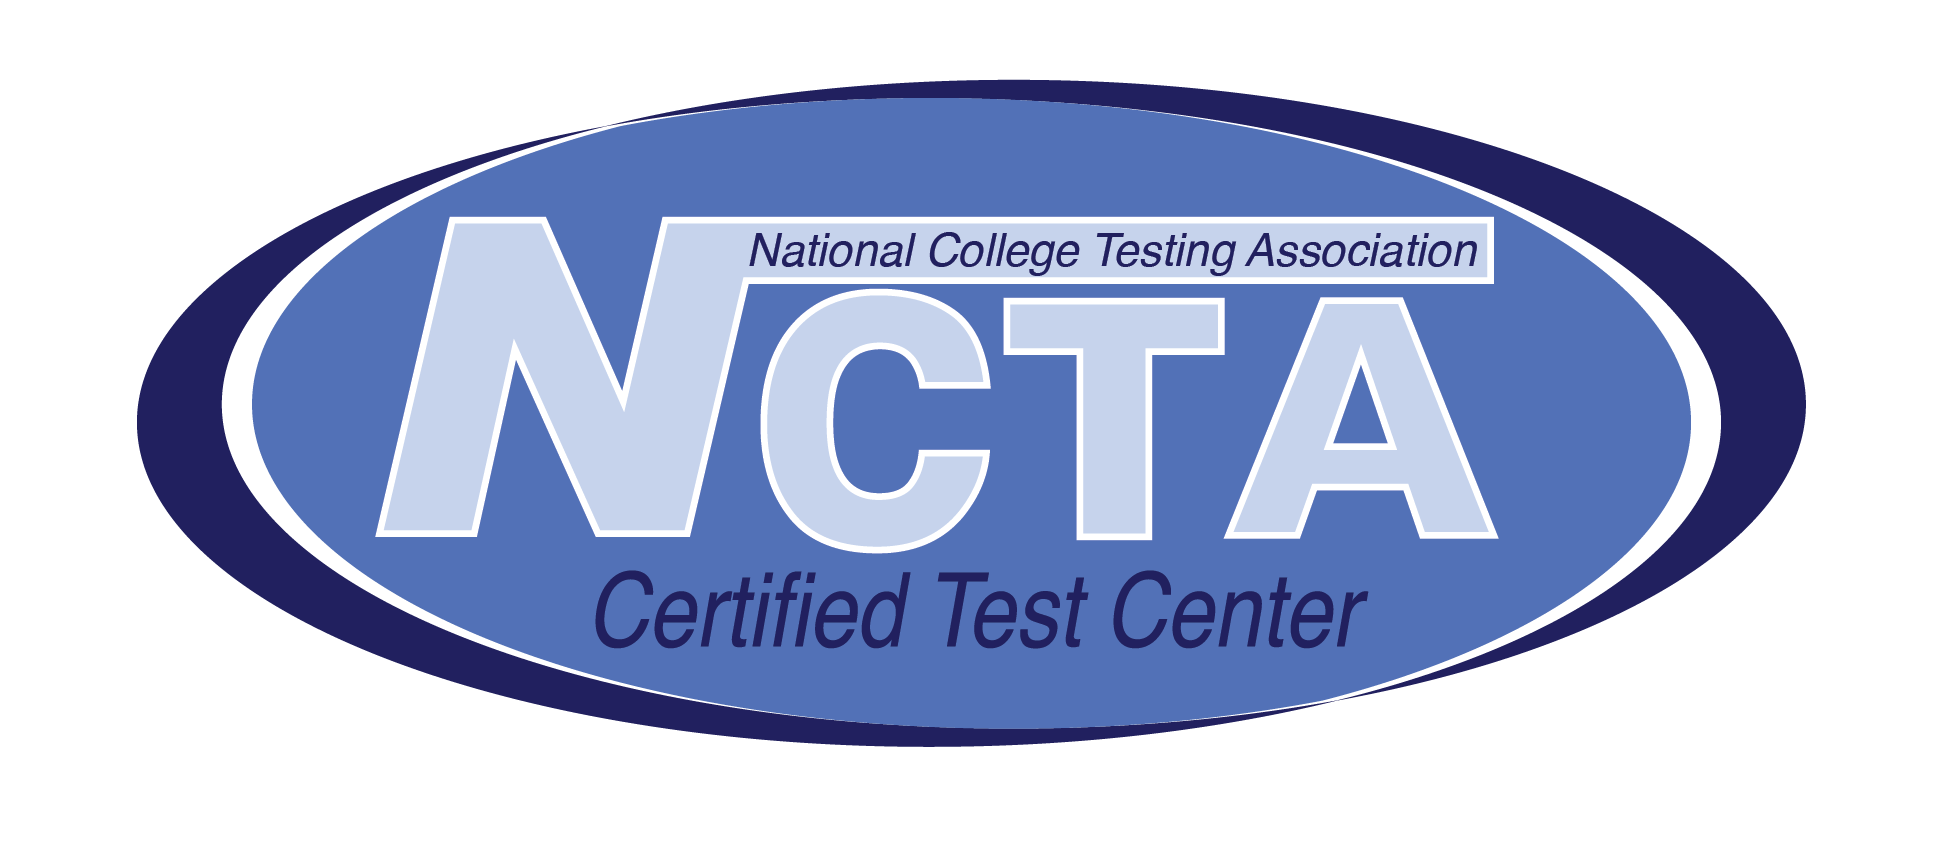 National College Testing Association Logo 2019